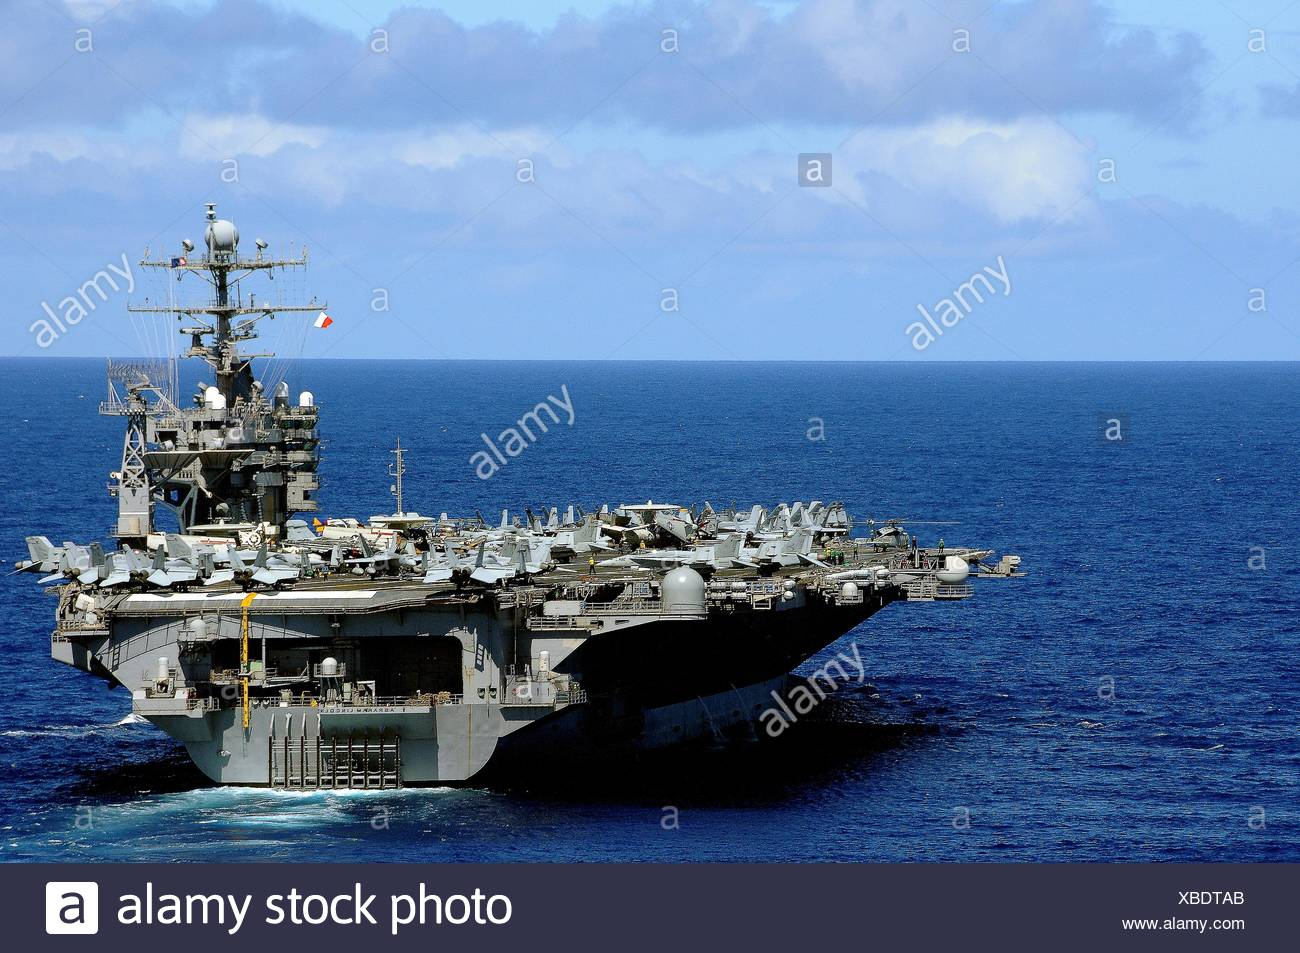 PACIFIC OCEAN Sept  19, 2010 The aircraft carrier USS Abraham Lincoln CVN 72 transits across the Pacific Ocean  The Abraham - Stock Image